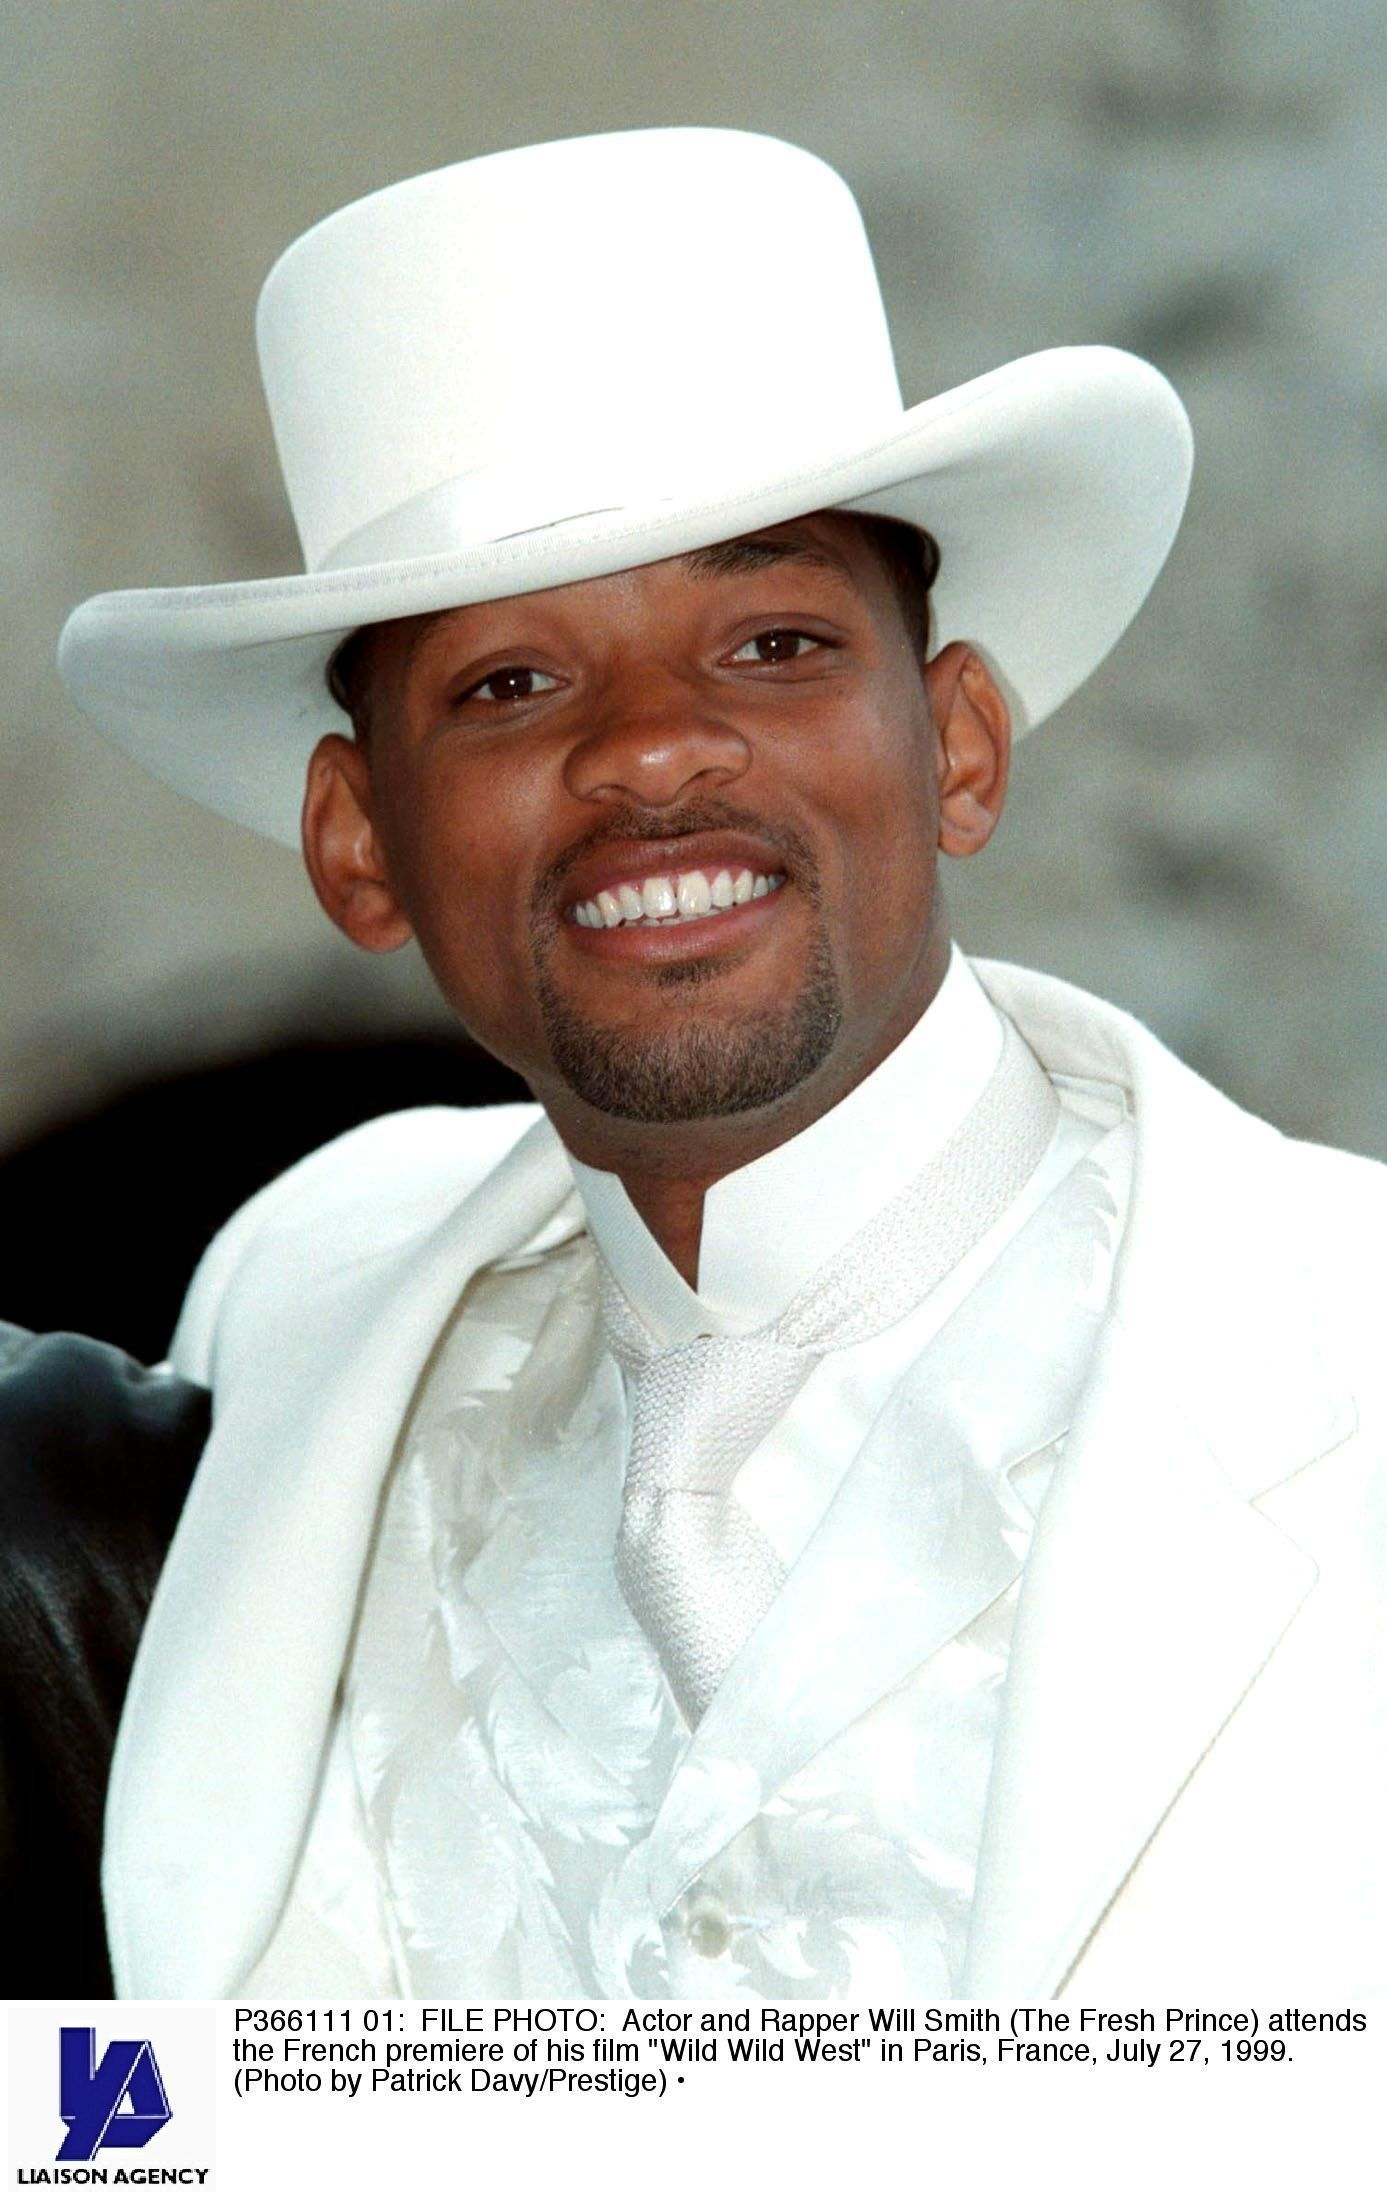 P366111 01: FILE PHOTO: Actor and Rapper Will Smith (The Fresh Prince) attends the French premiere of his film 'Wild Wild West' in Paris, France, July 27, 1999. (Photo by Patrick Davy/Prestige)